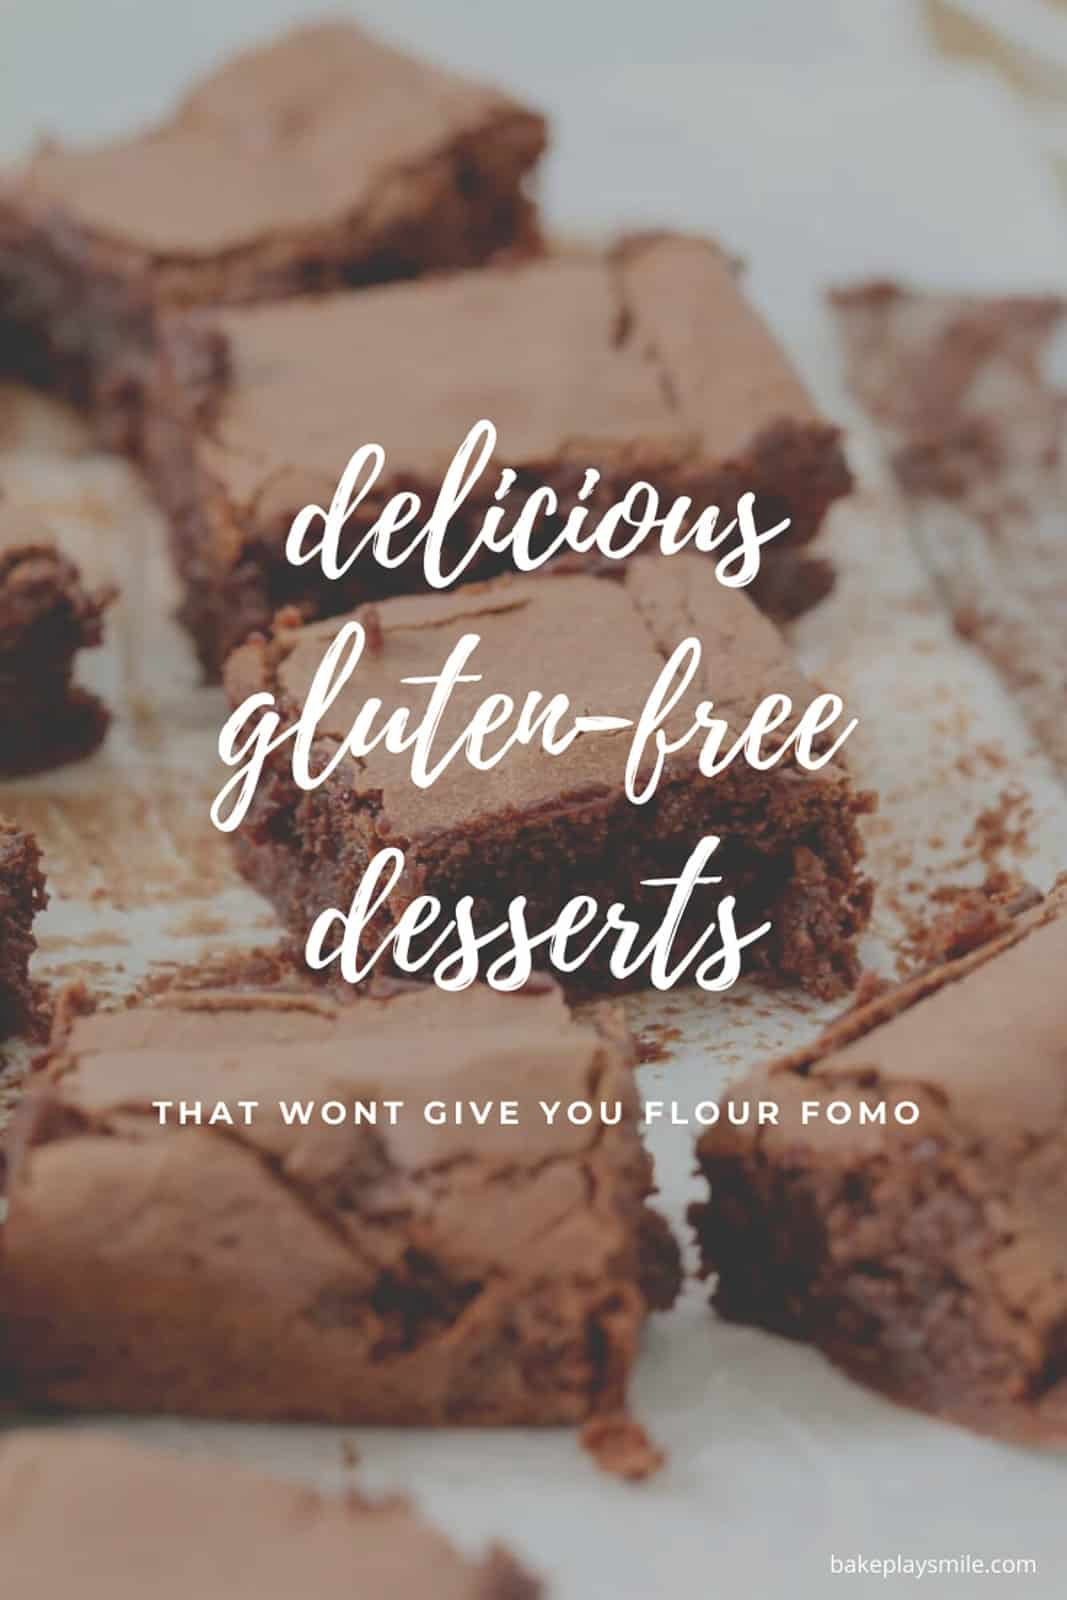 Pieces of chocolate brownie on a chopping board with the overlay of text 'delicious gluten-free desserts'